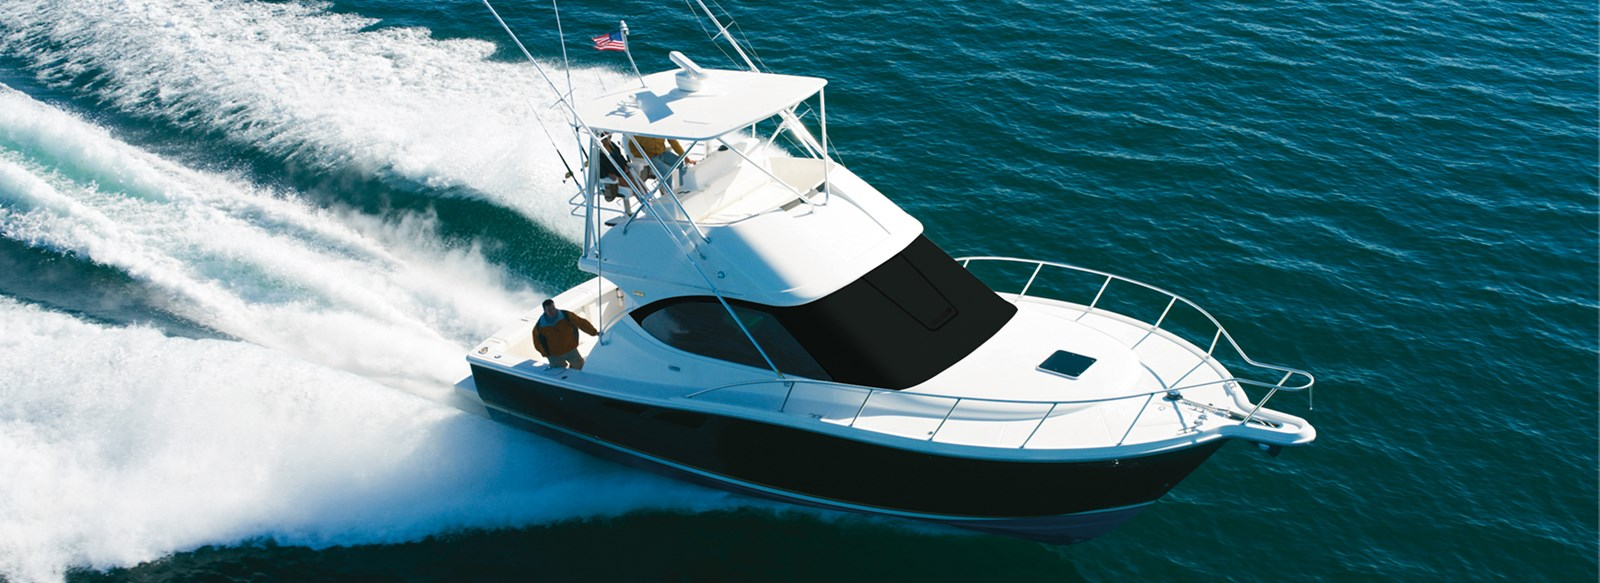 New Tiara 3900 Convertible Yachts For Sale